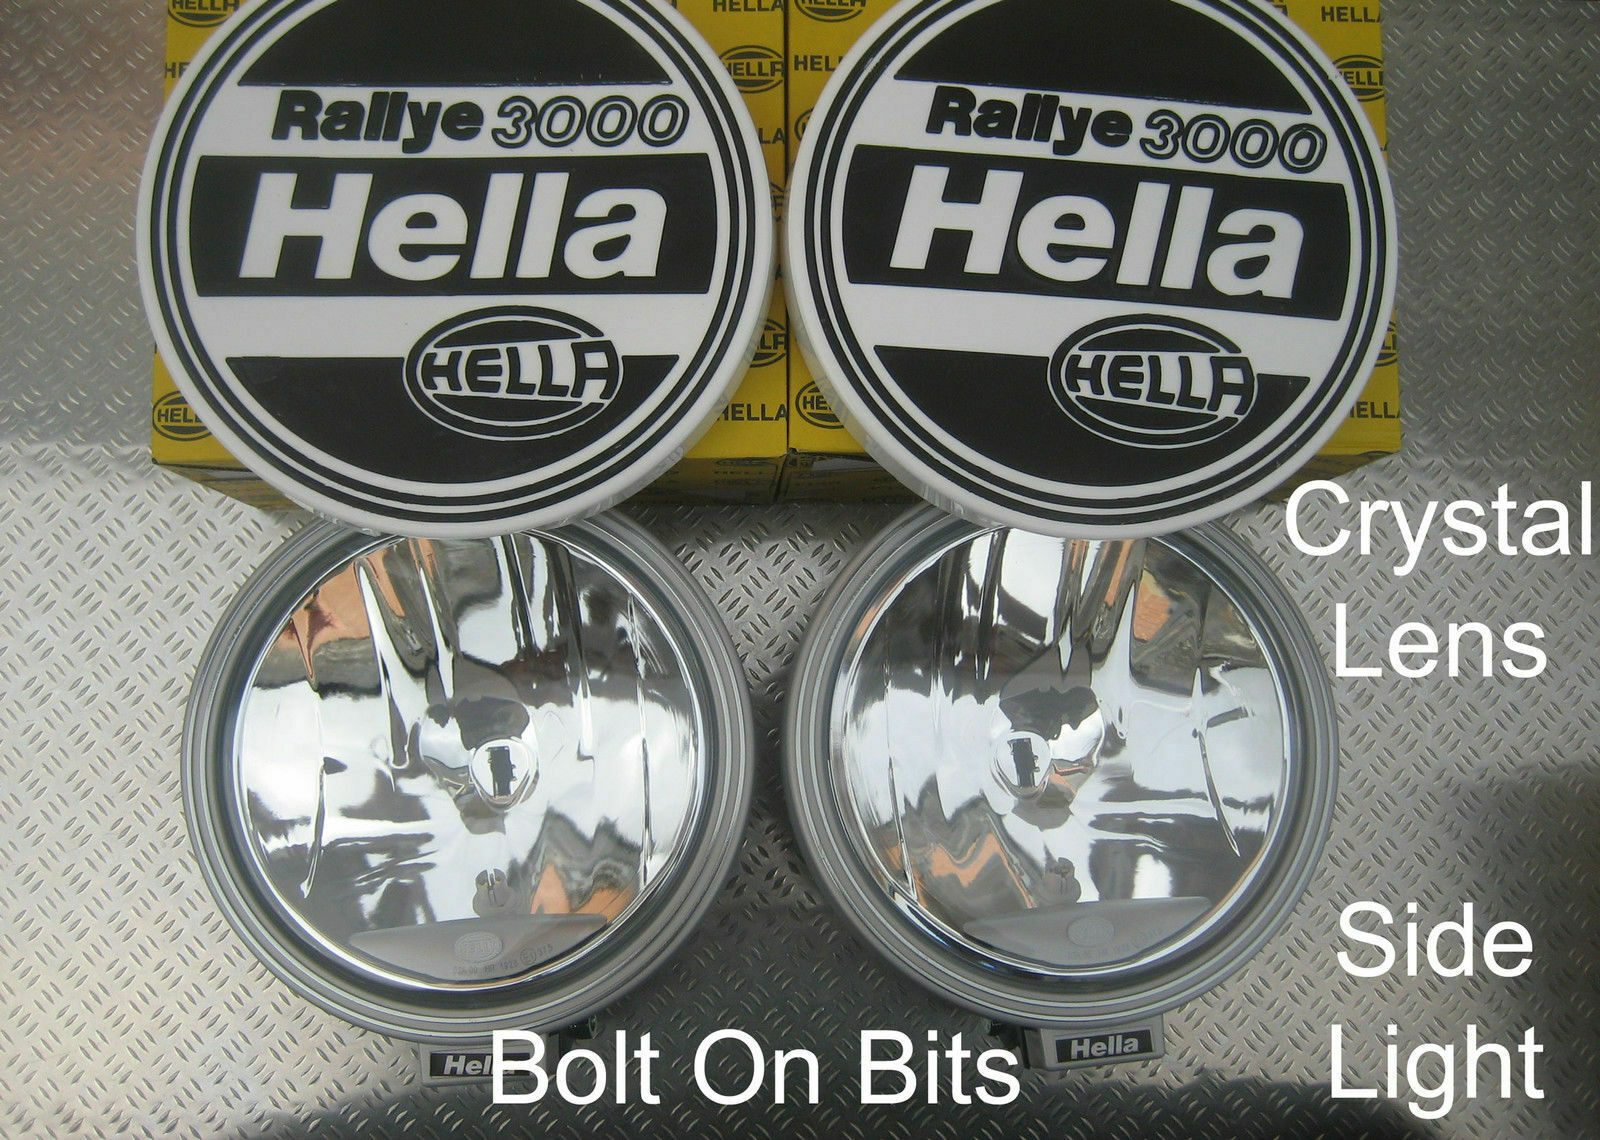 Hella Rallye 3000 Spot Light Lamps Crystal Lens Sidelight Covers 2006 Hilux Spotlight Wiring Diagram 1 Of 1only 2 Available